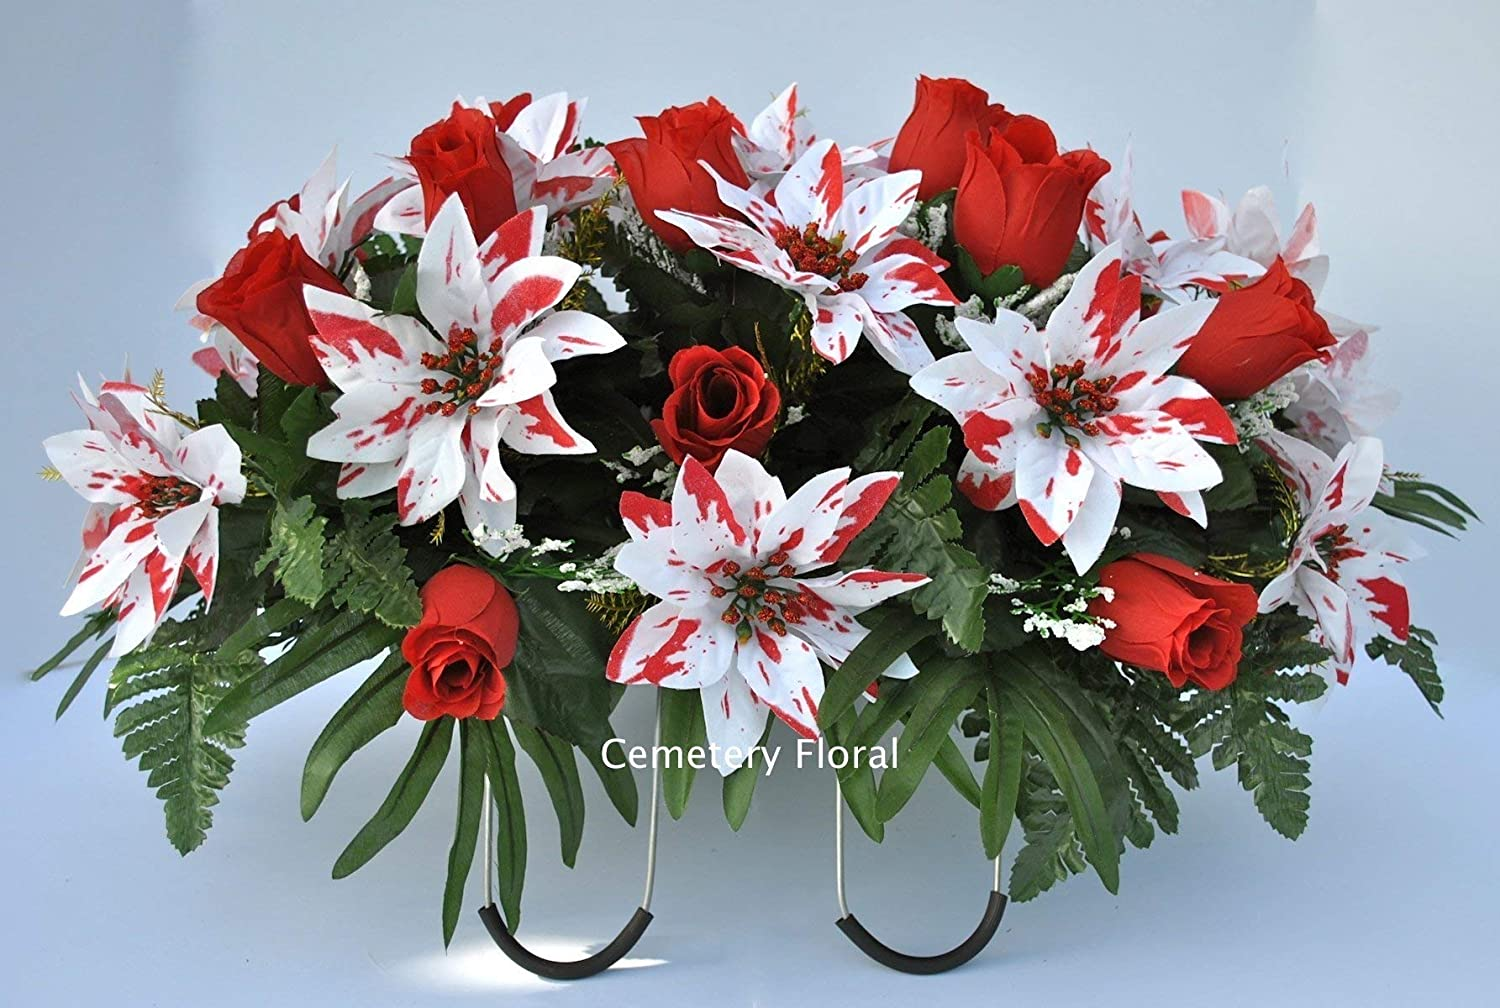 Amazon Com Cemetery Headstone Decoration For Christmas With Peppermint Poinsettias And Red Roses As A Saddle Handmade